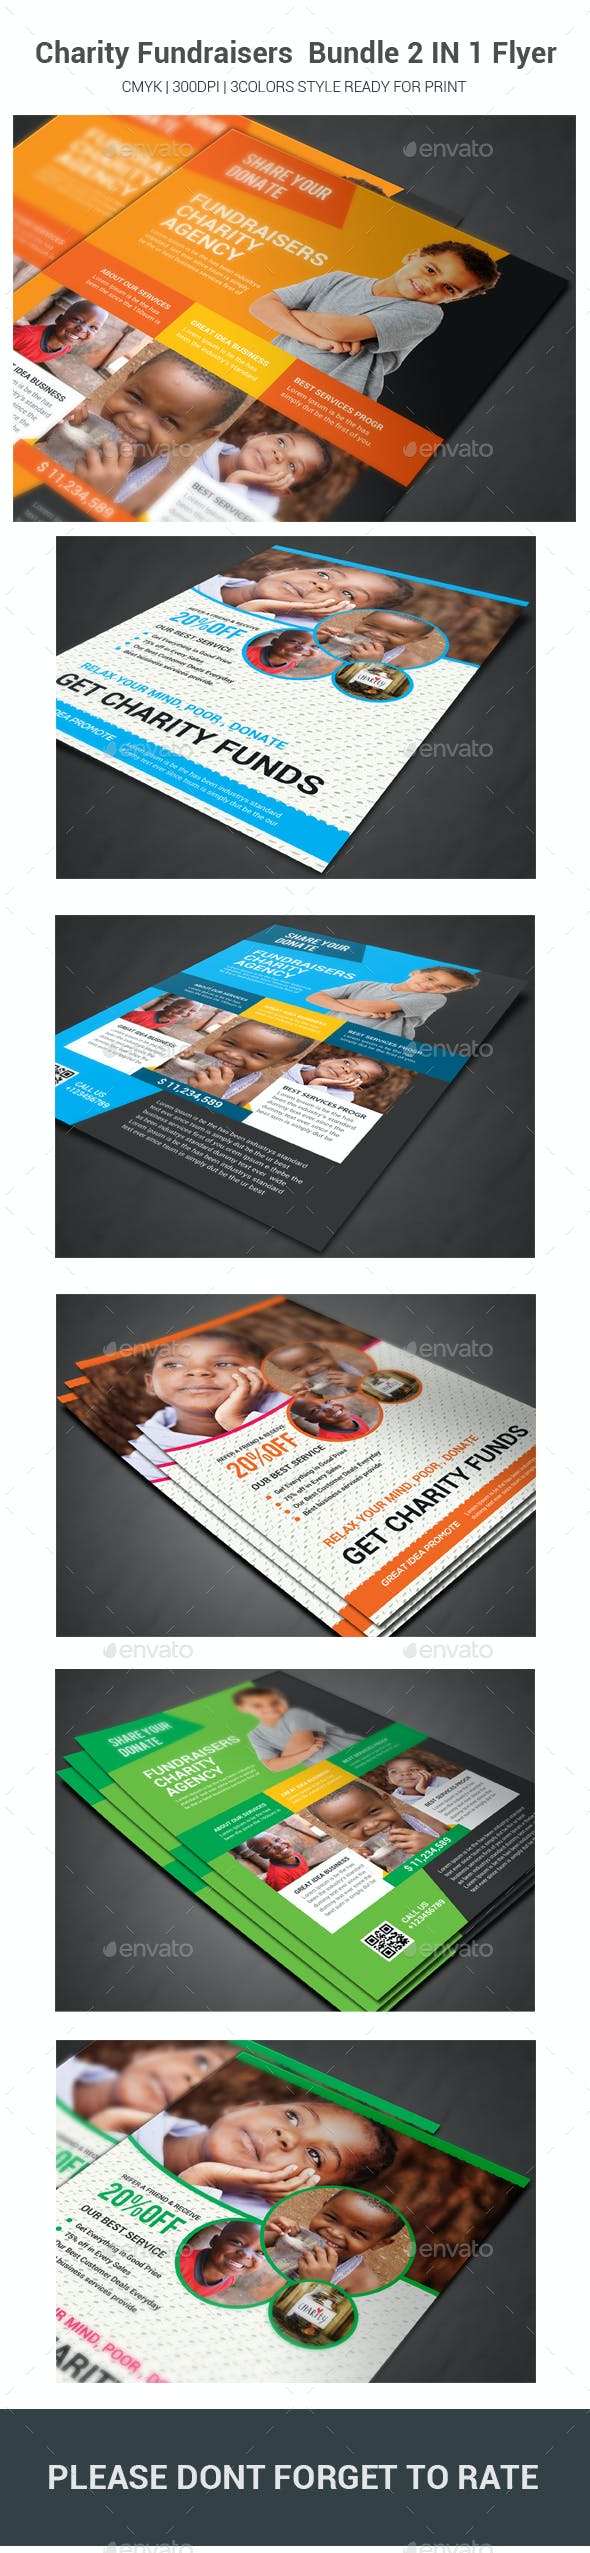 Charity Fundraisers  Bundle 2 IN 1 Flyer